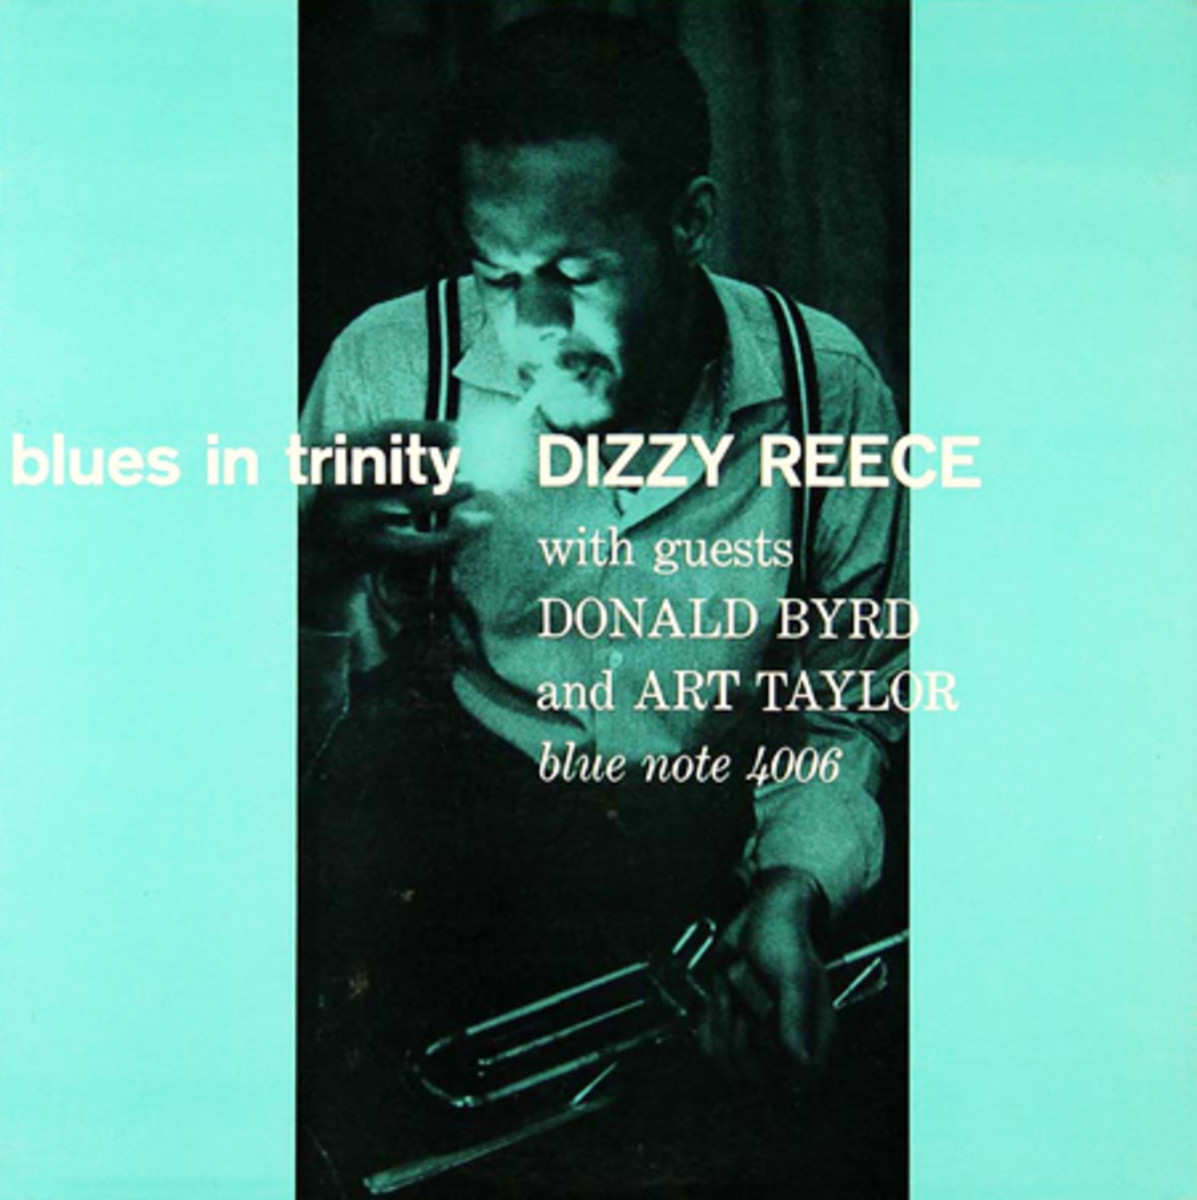 "Dizzy Reece ""Blues In Trinity"" Blue Note Records 4006 12"" LP Vinyl Record (1958) Album Cover Design by Reid Miles, Photo by Francis Wolff"